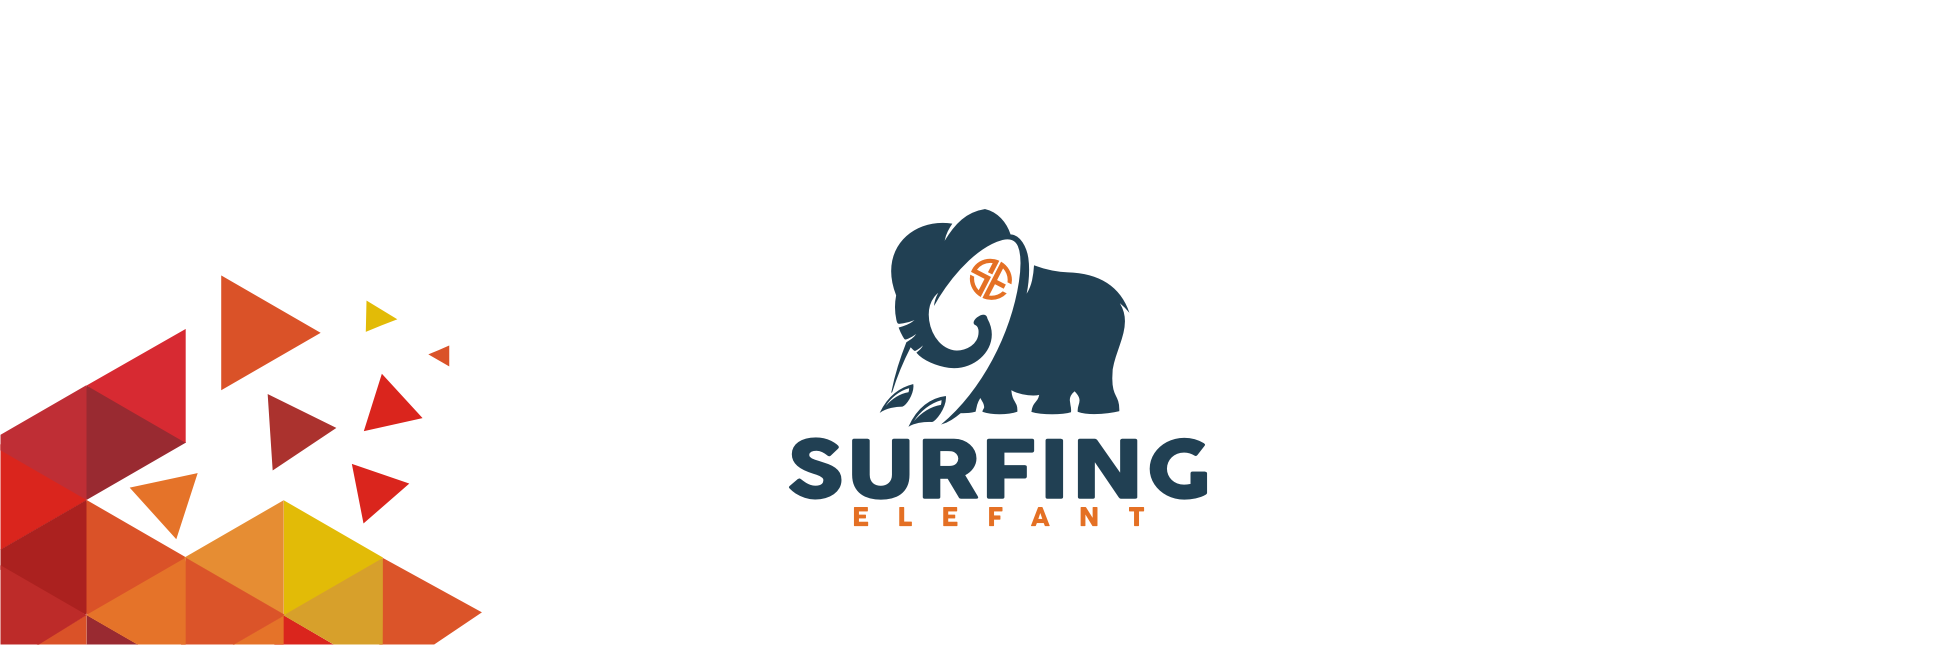 Create a fun / hip logo for new sport products brand: surfing elefant